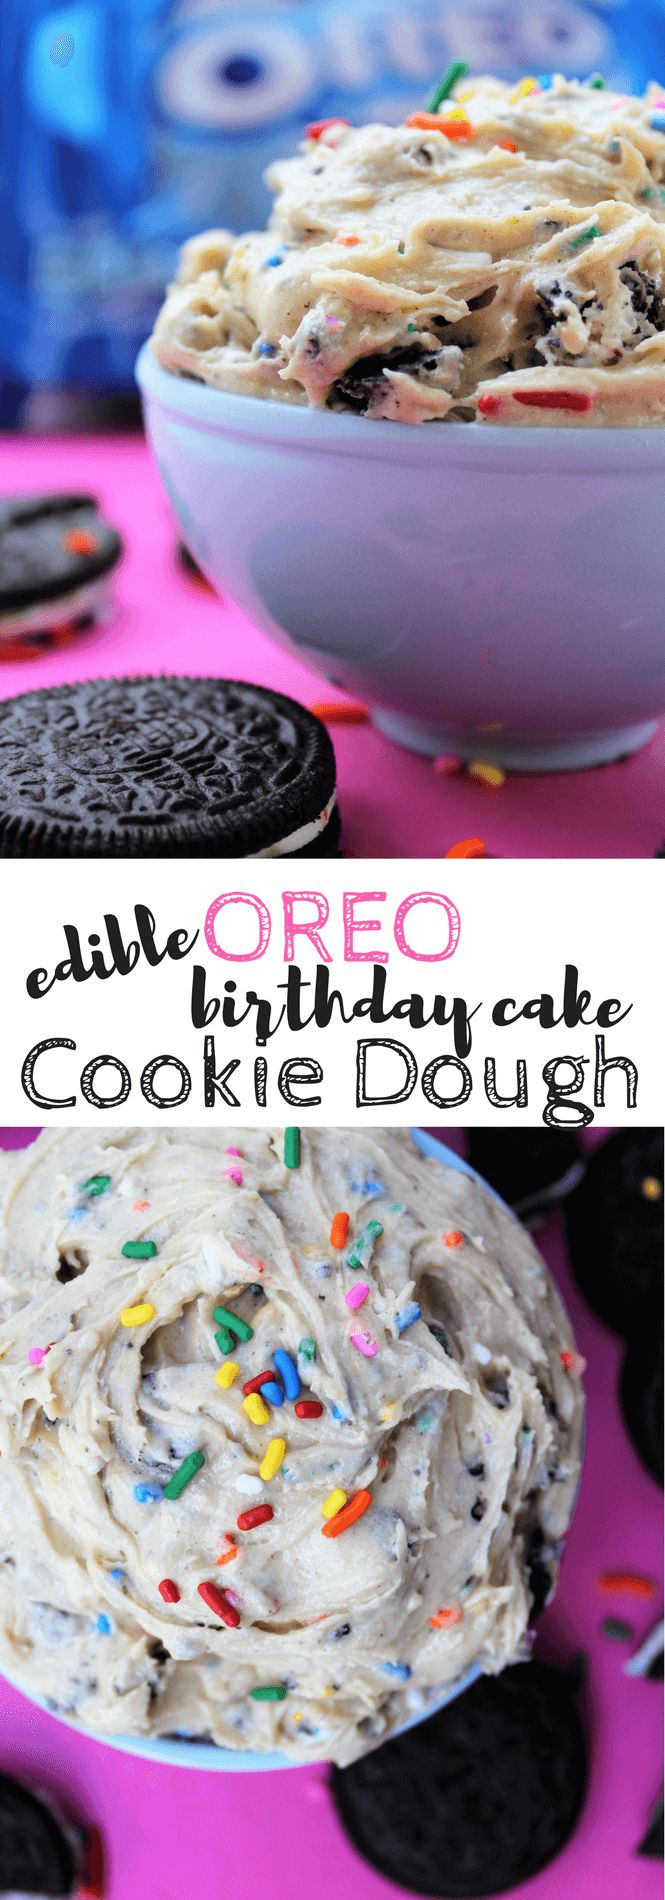 Edible OREO Birthday Cake Cookie Dough is the best of all worlds as far as dessert goes. Delicious cookie dough, crispy bits of Birthday Cake OREO Cookies, and fun sprinkles mixed into a very quick and simple snack. Oh my!